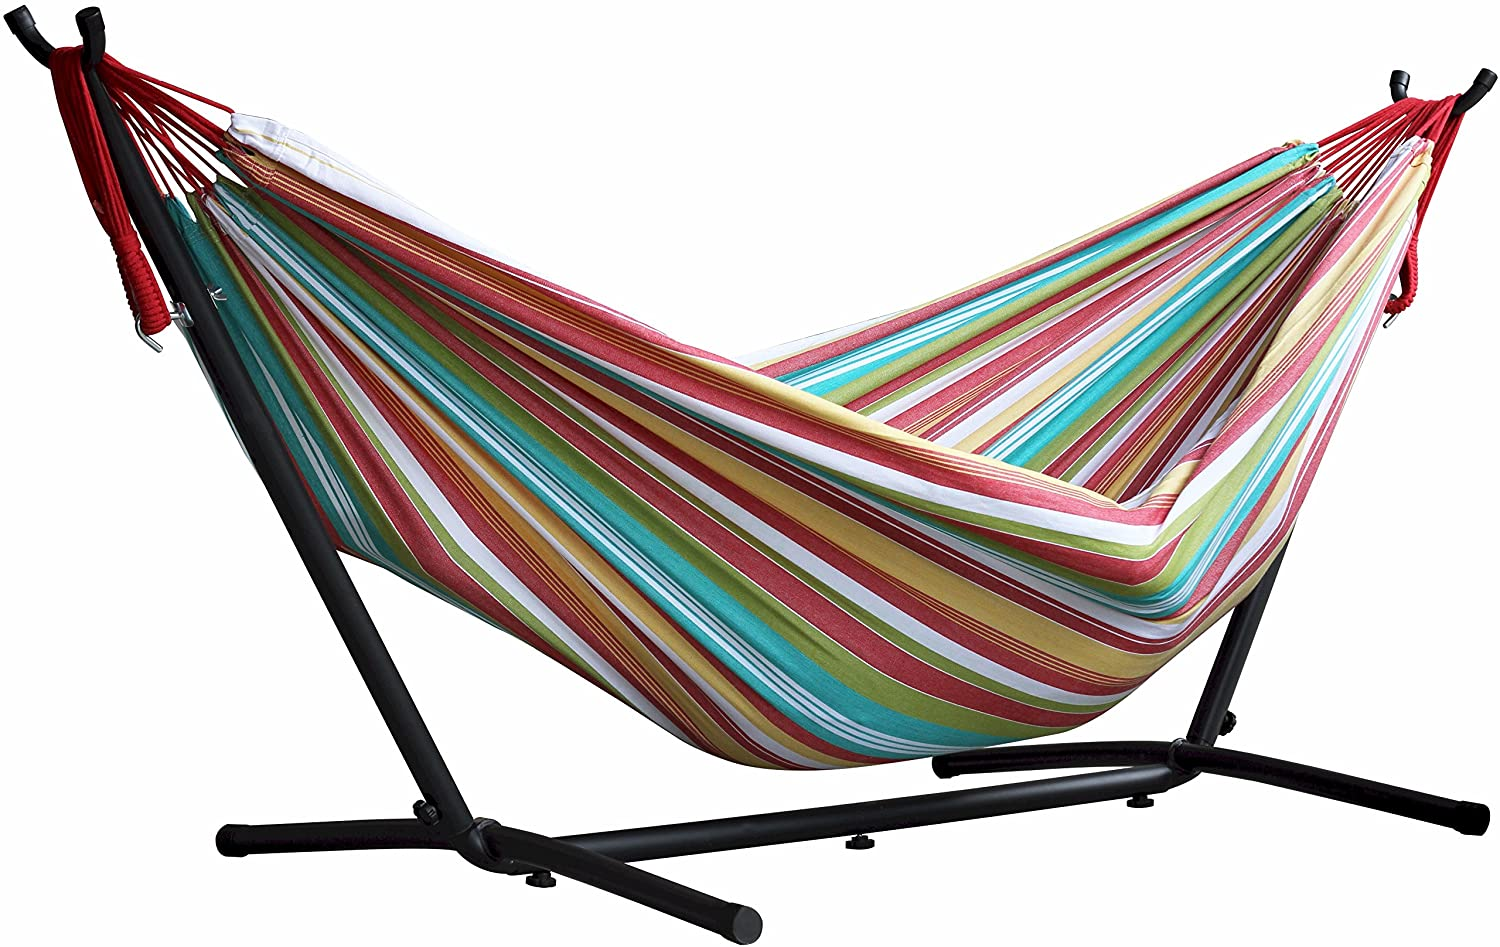 Vivere Hammocks As Low As $94.49 Shipped | Save Up To 40%